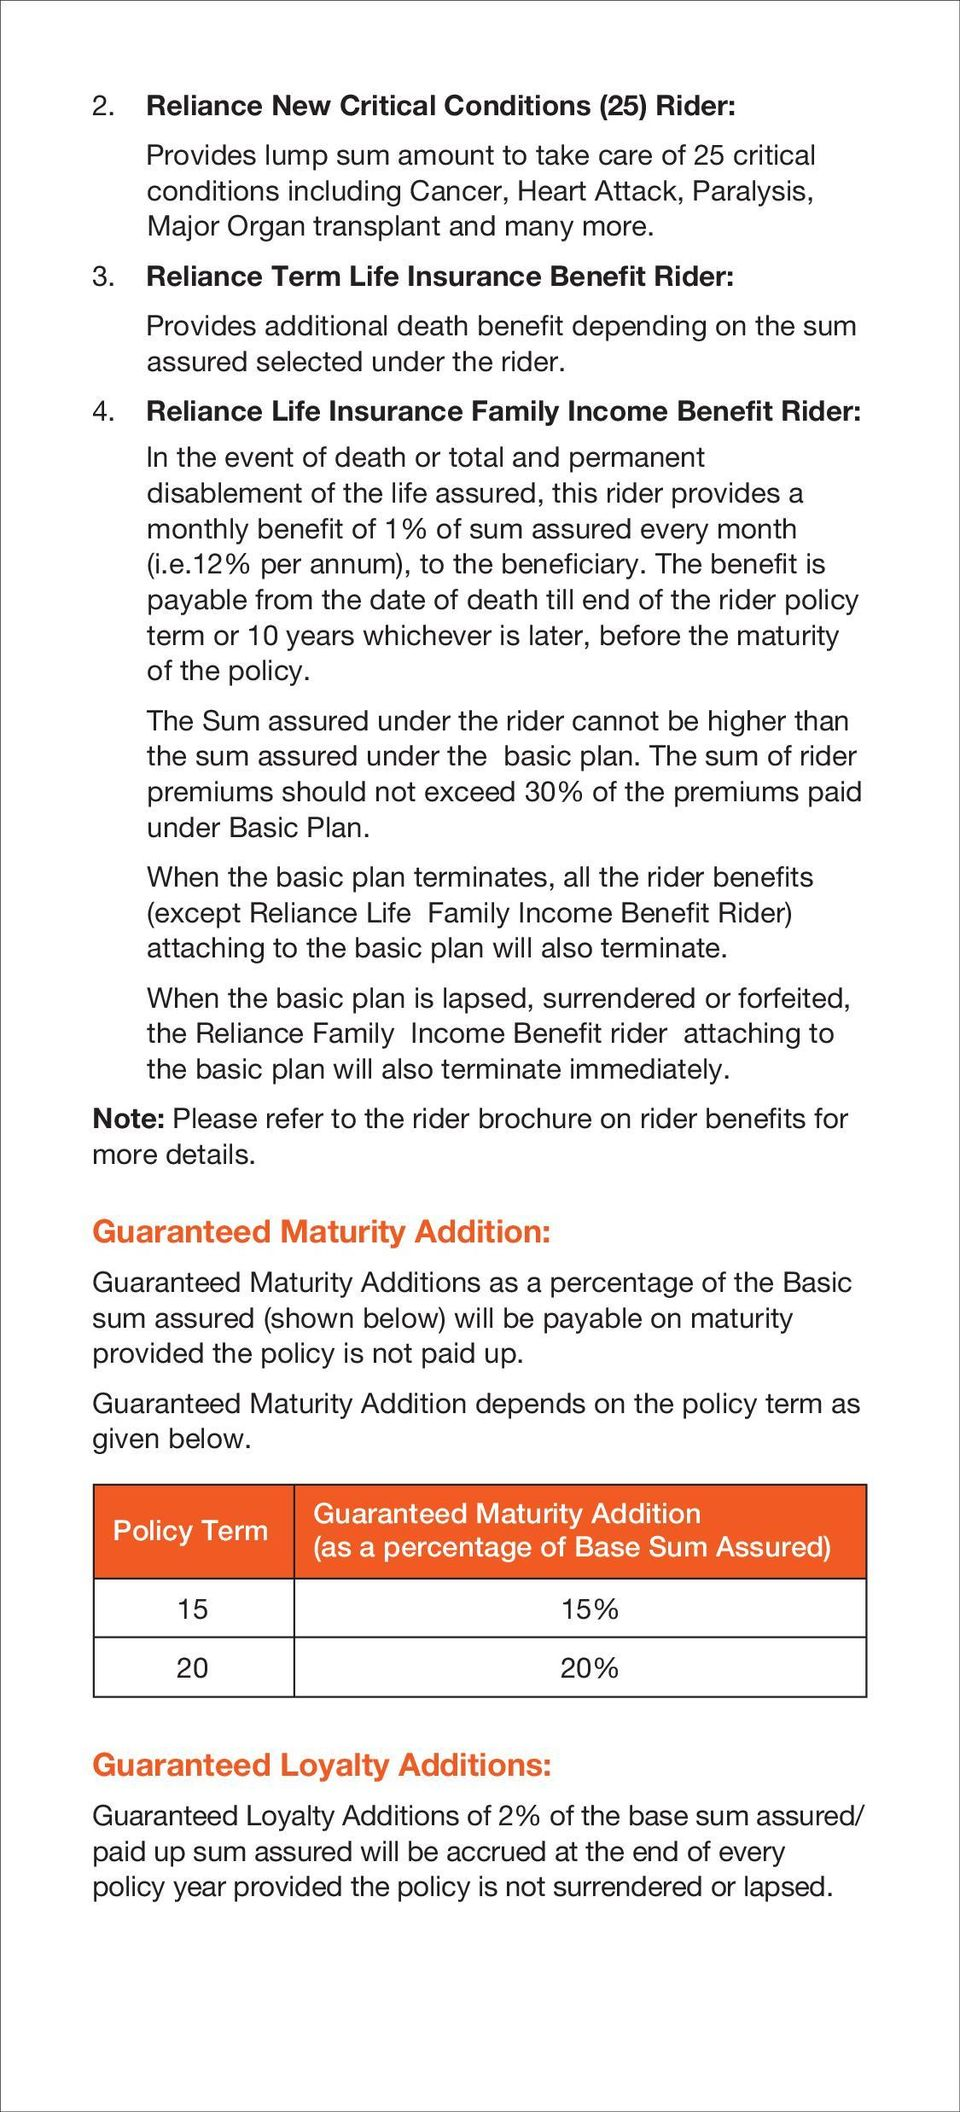 Reliance Life Insurance Family Income Benefit Rider: In the event of death or total and permanent disablement of the life assured, this rider provides a monthly benefit of 1% of sum assured every